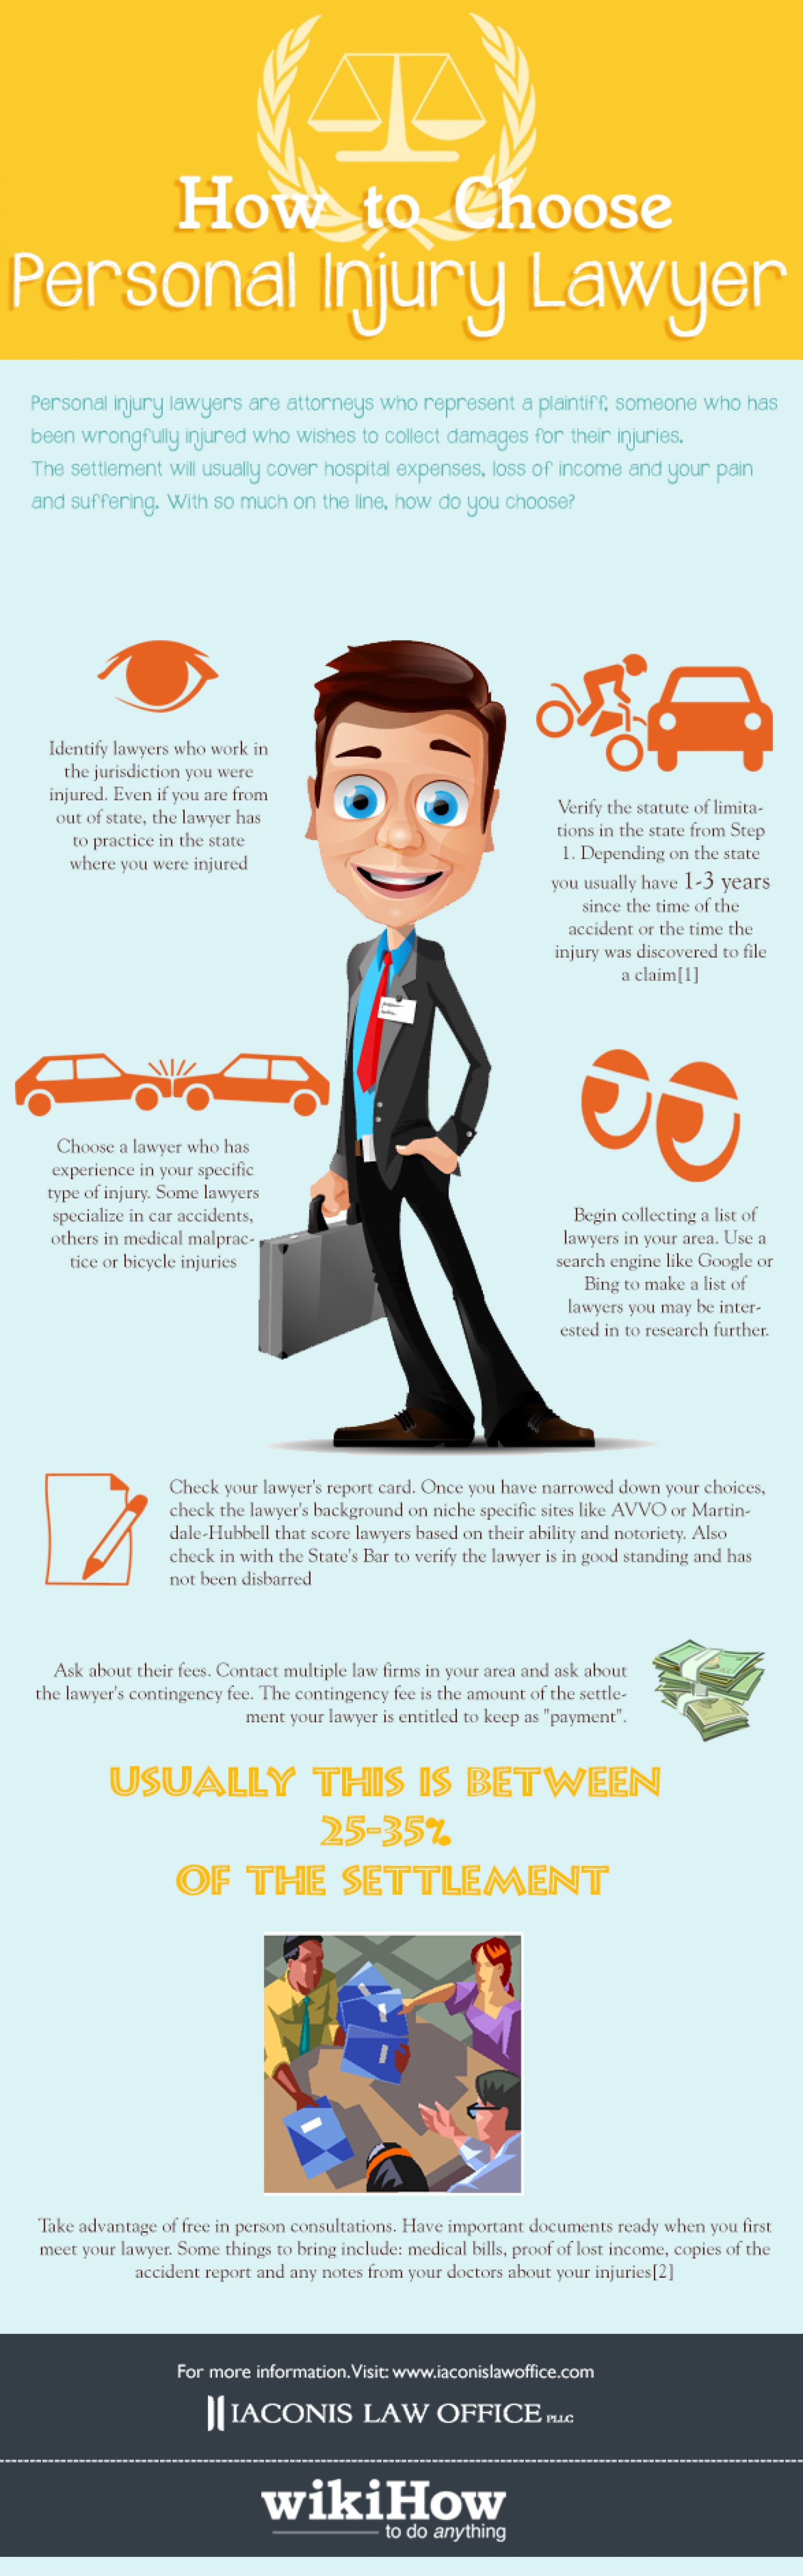 How to Choose Personal Injury Lawyer Infographic